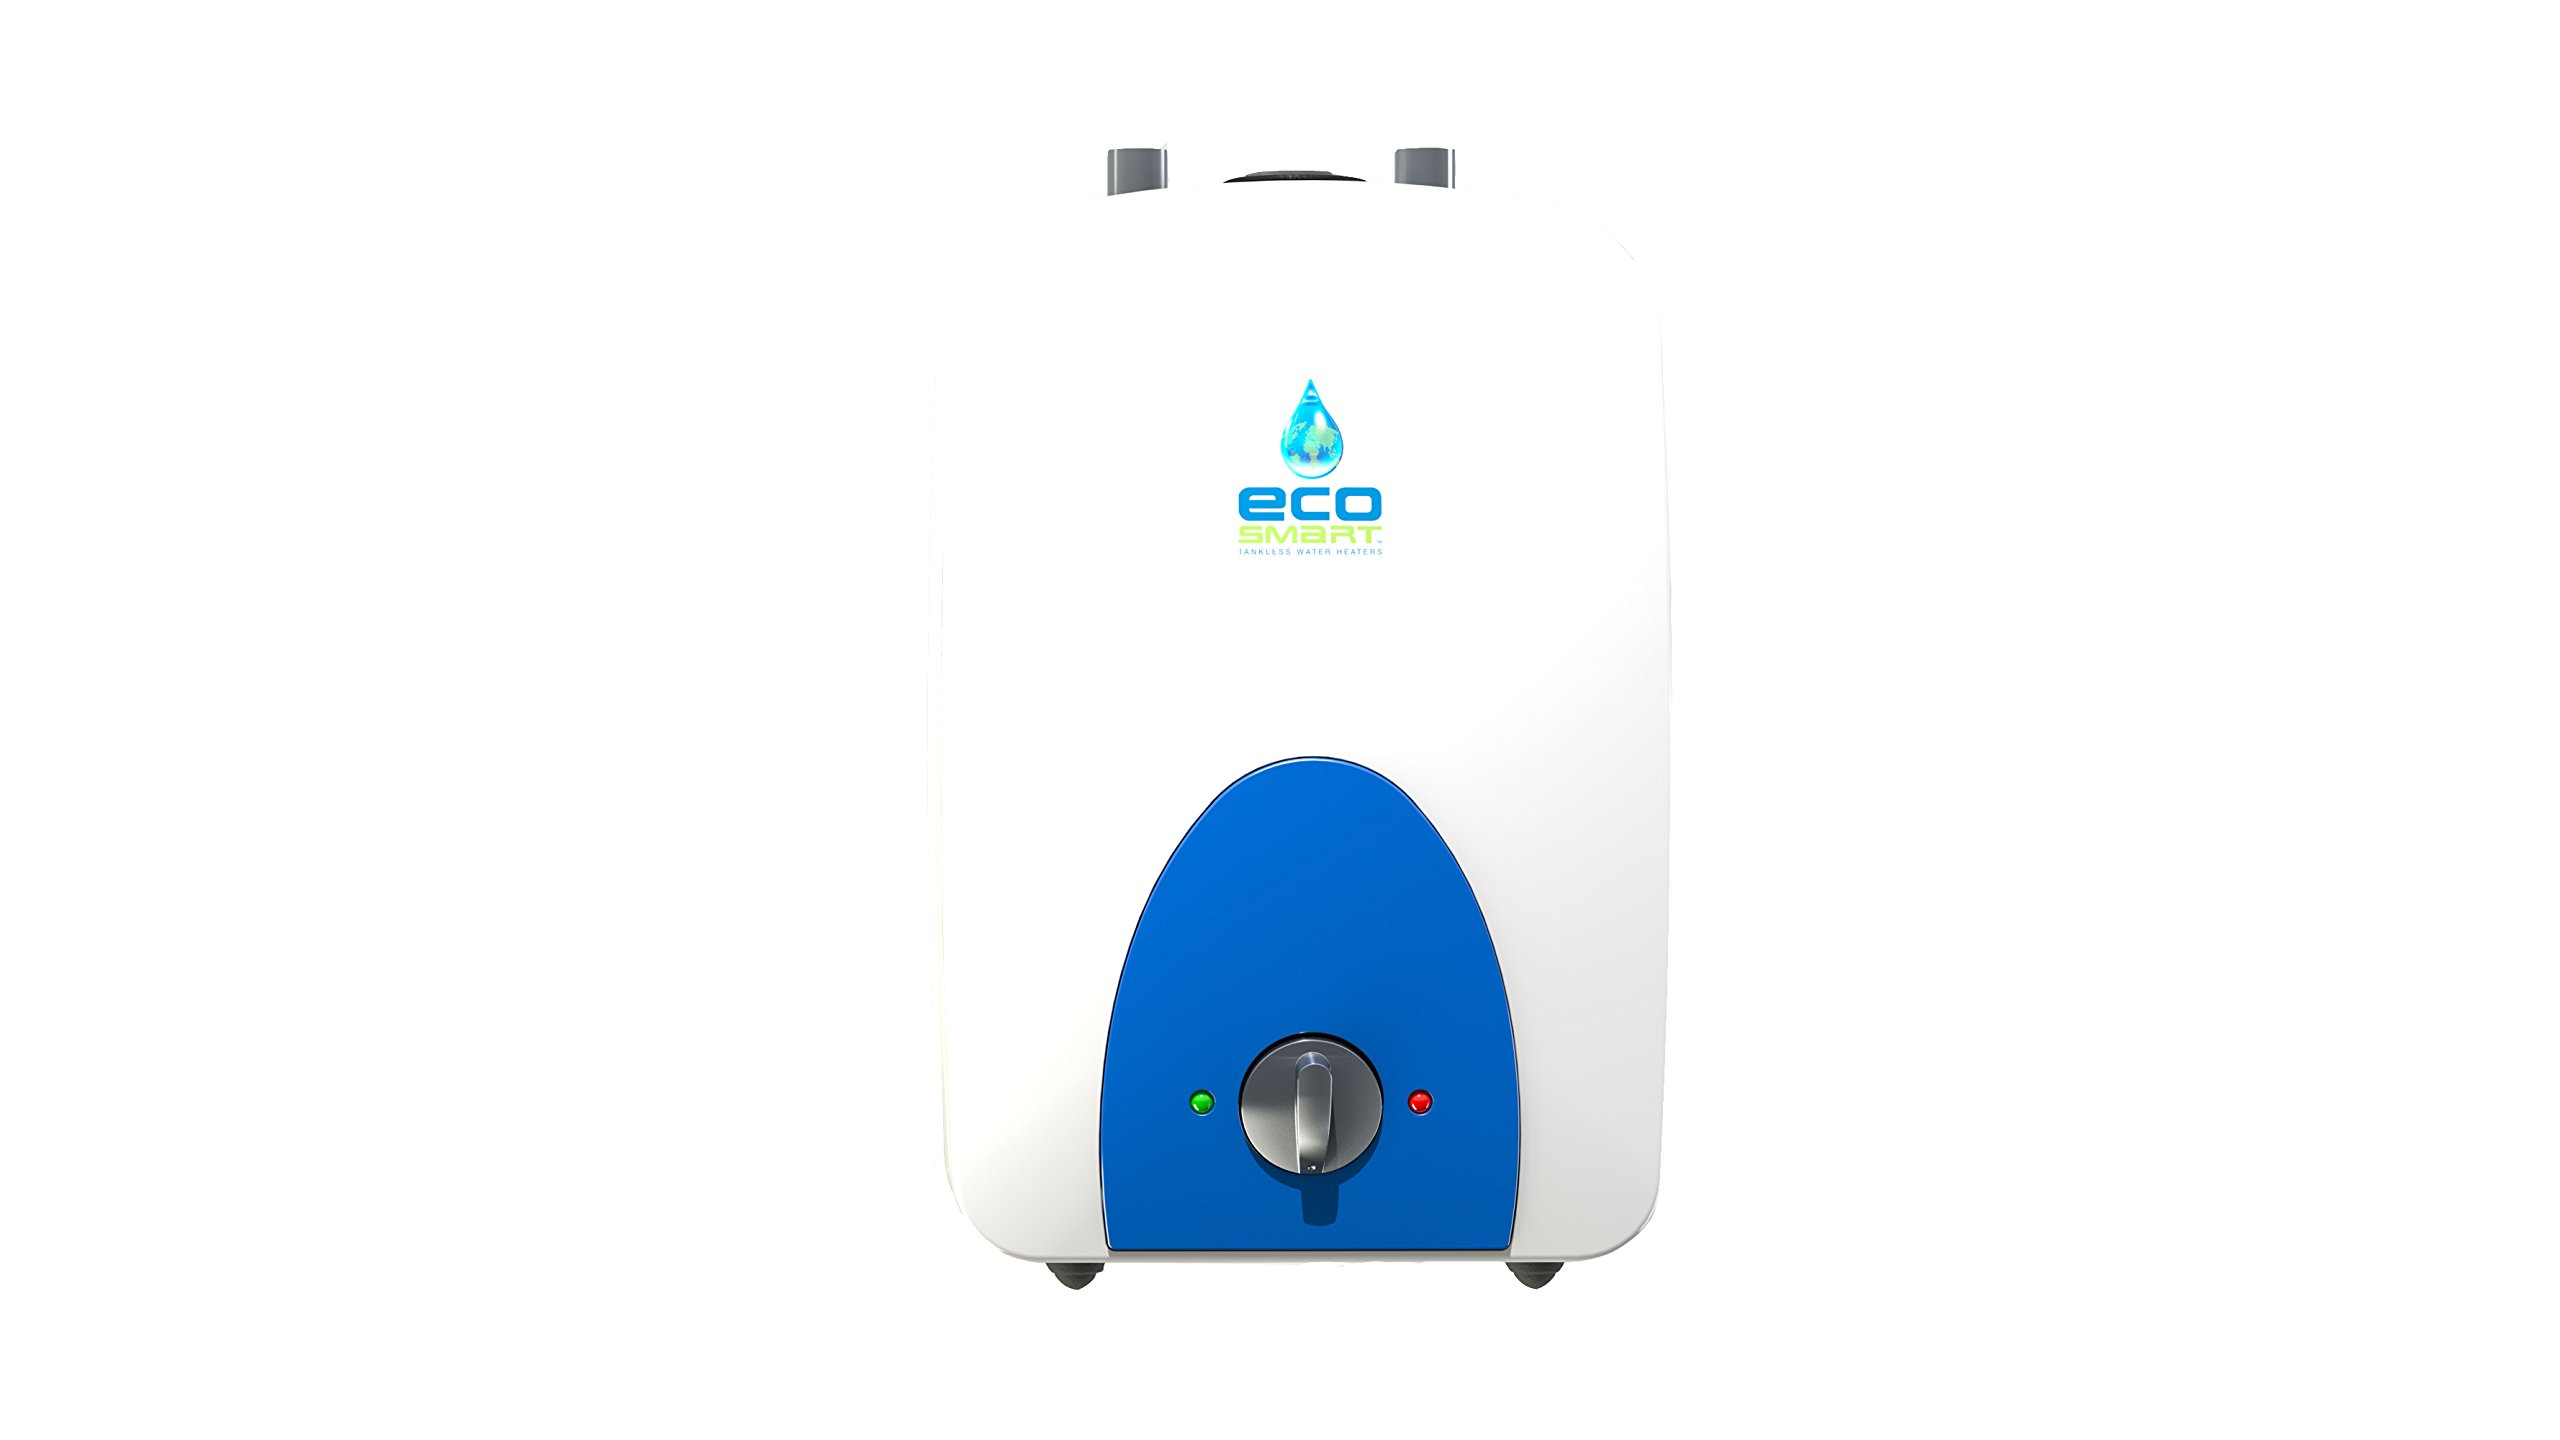 Ecosmart ECO MINI 4 4-Gallon 120V Electric Mini Tank Water Heater